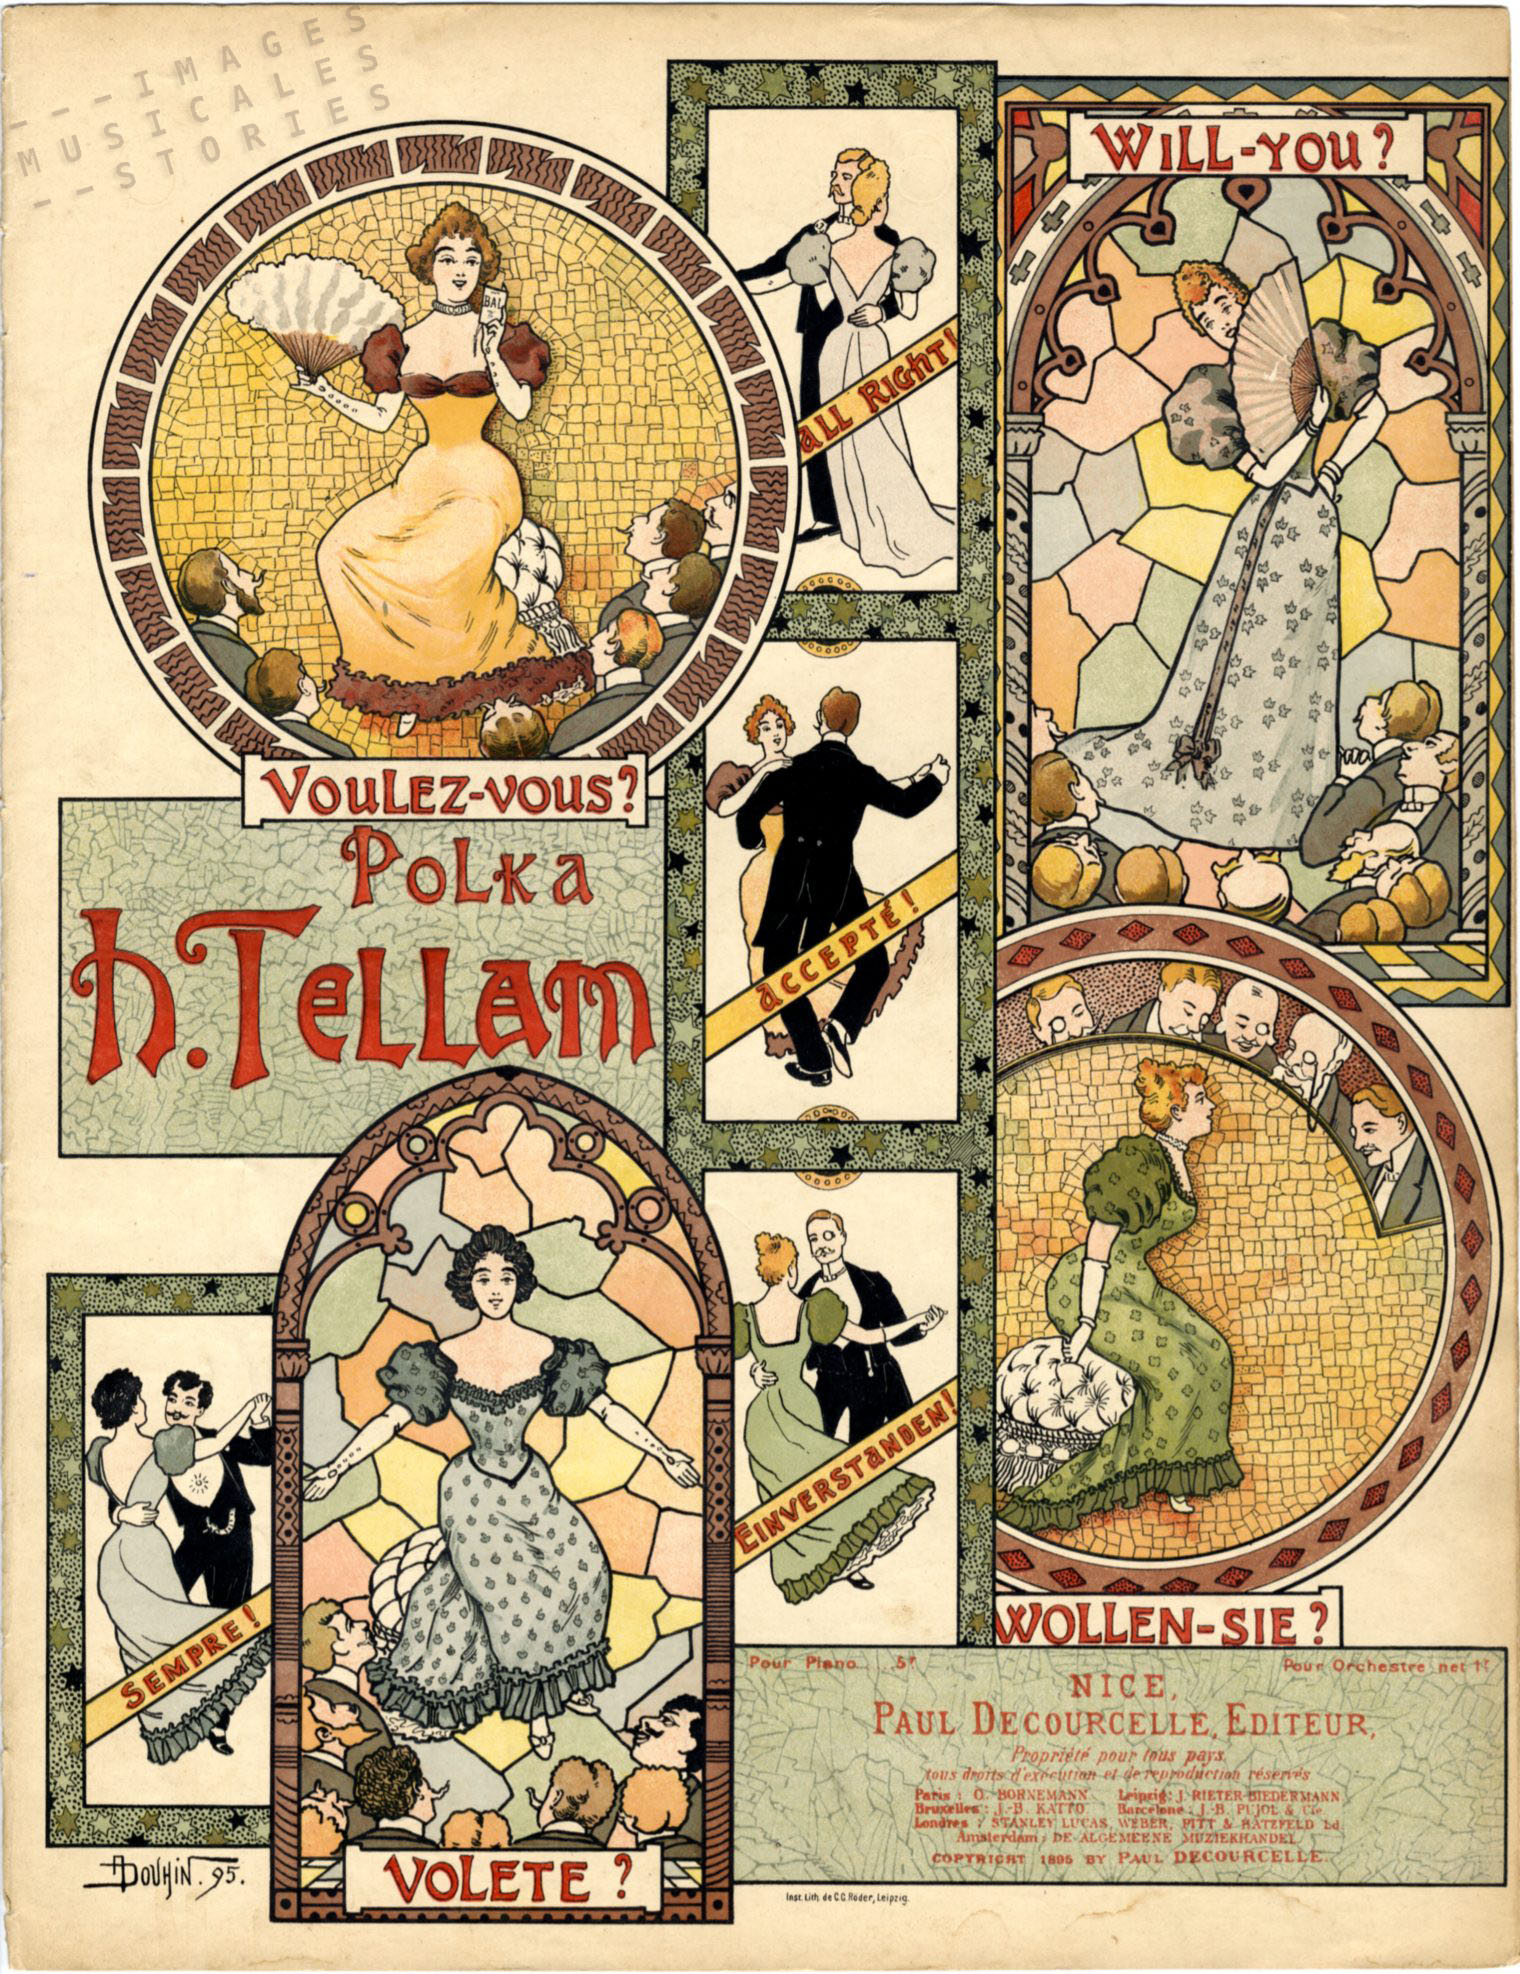 Cover design by André Douhin. for sheet music by Decourcelles (1895).